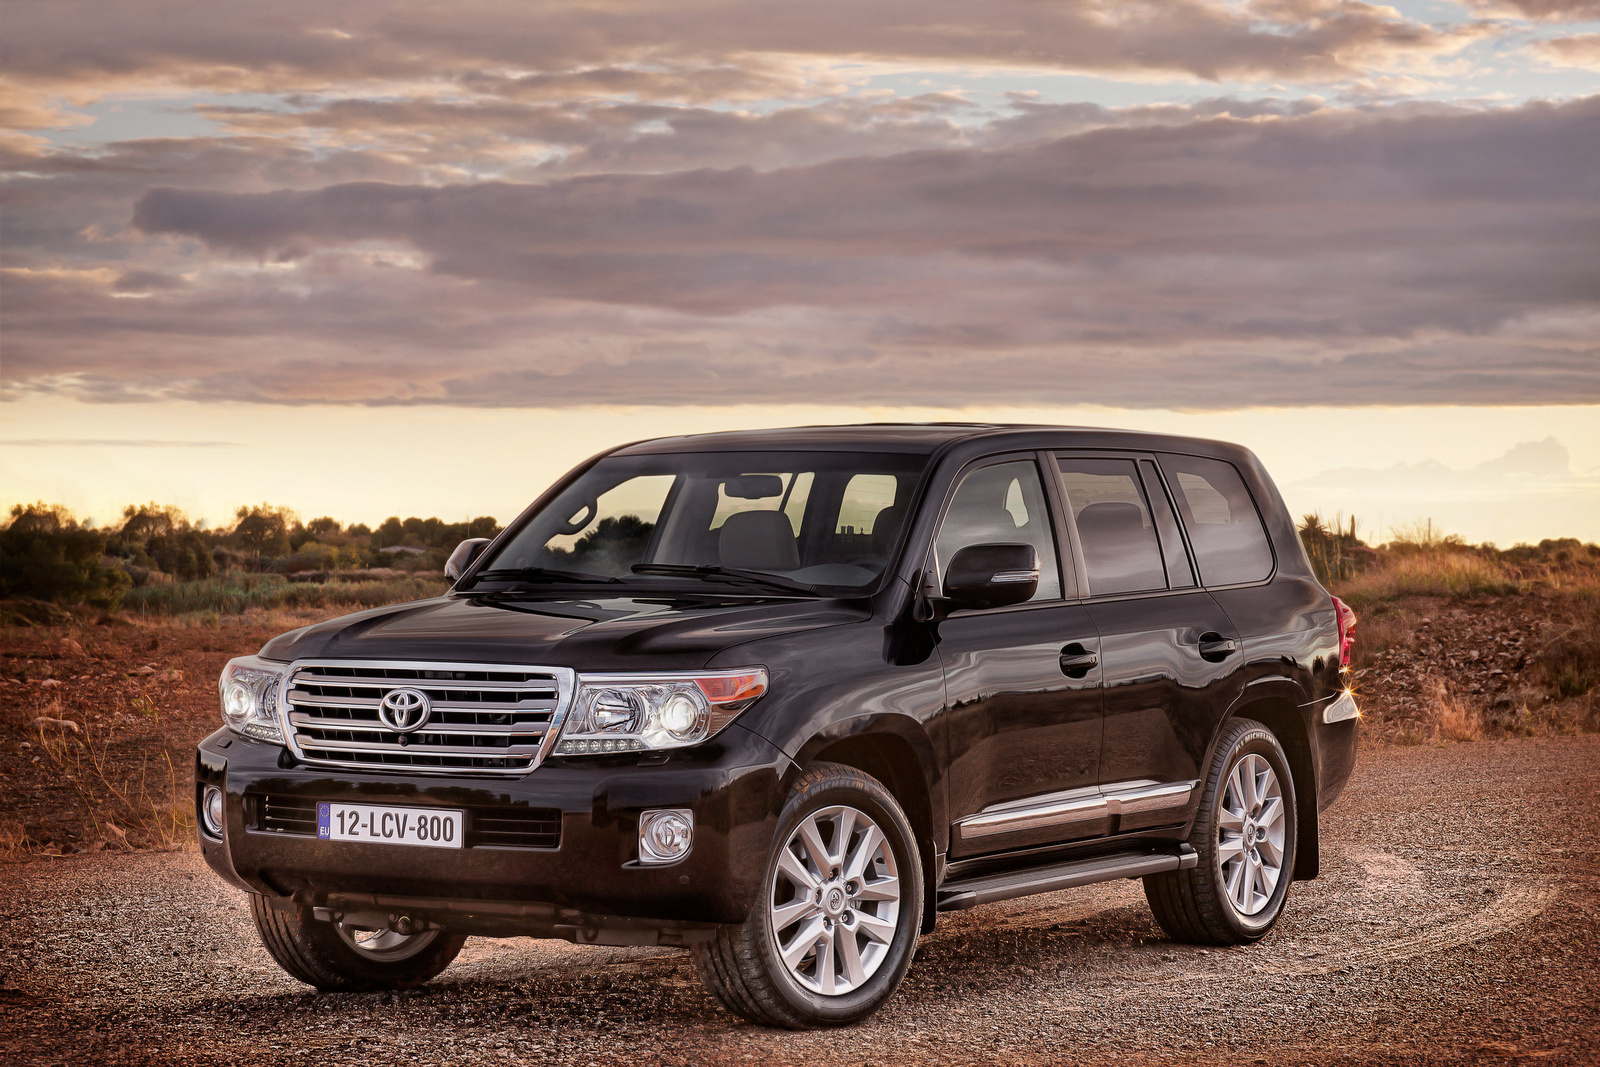 2013 Toyota Land Cruiser Overview Cargurus 1960s Options